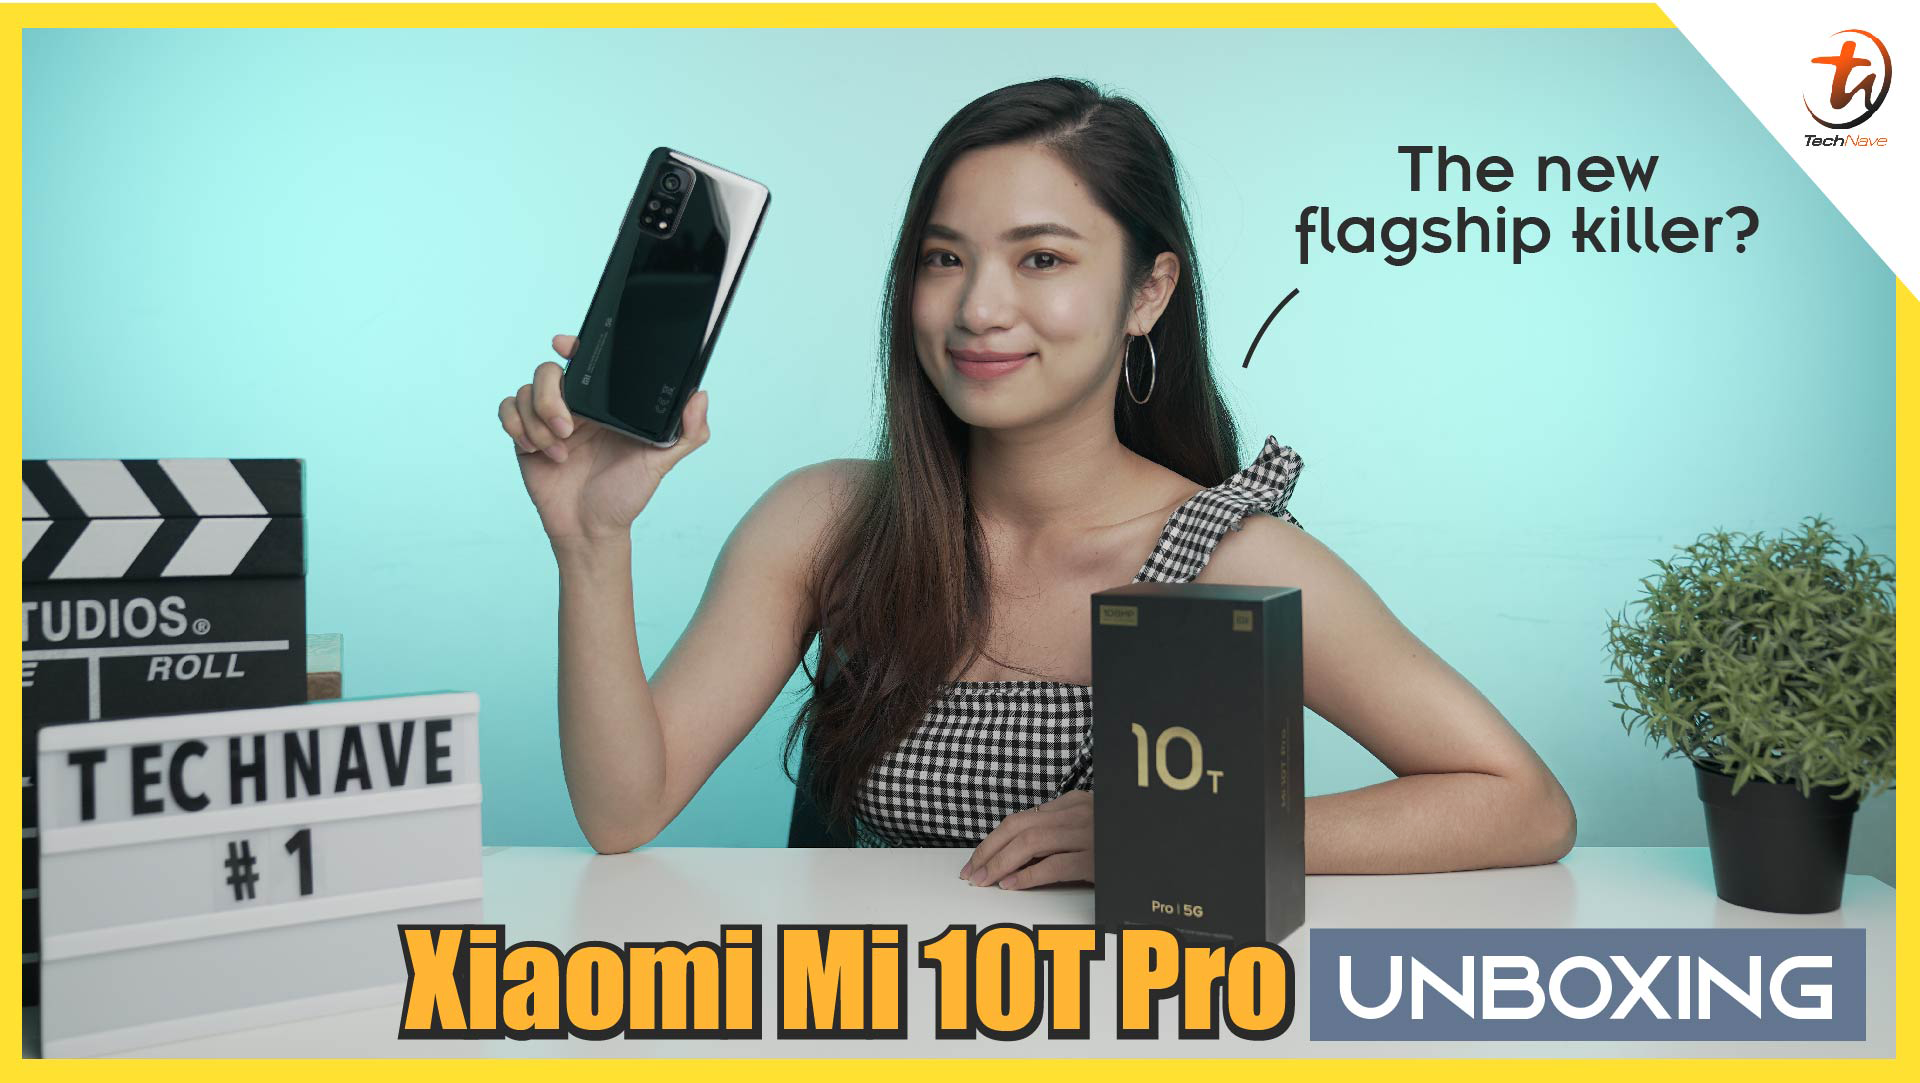 Xiaomi Mi 10T Pro - Flagship killer?! Is it legit? |TechNave Unboxing and Hands-On Video